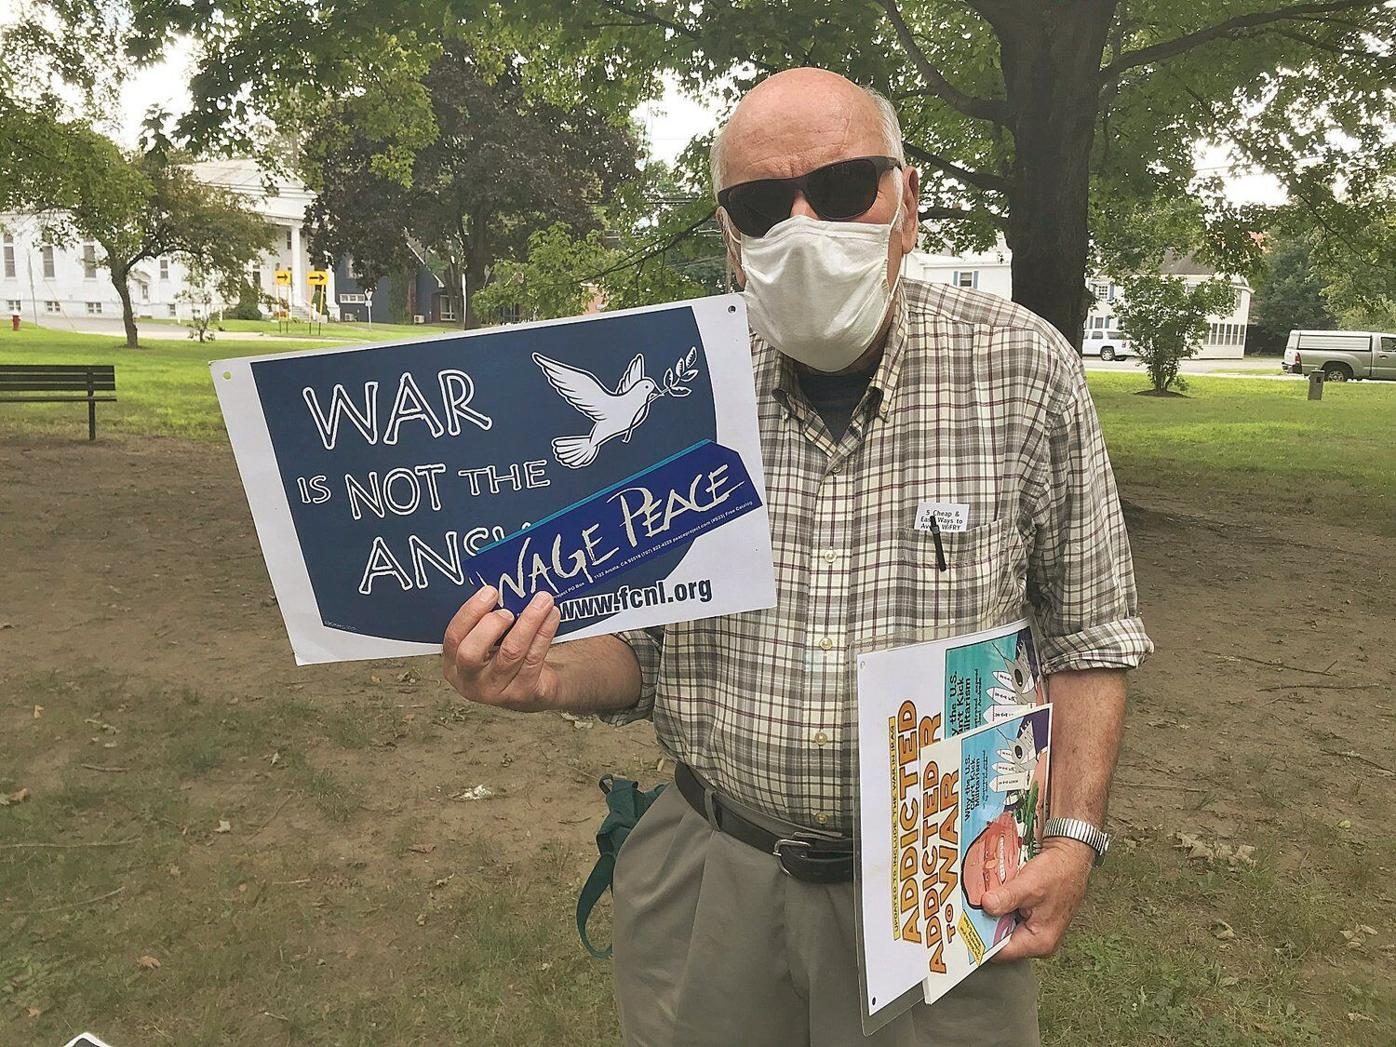 On Hiroshima anniversary, protesters want nukes on people's minds